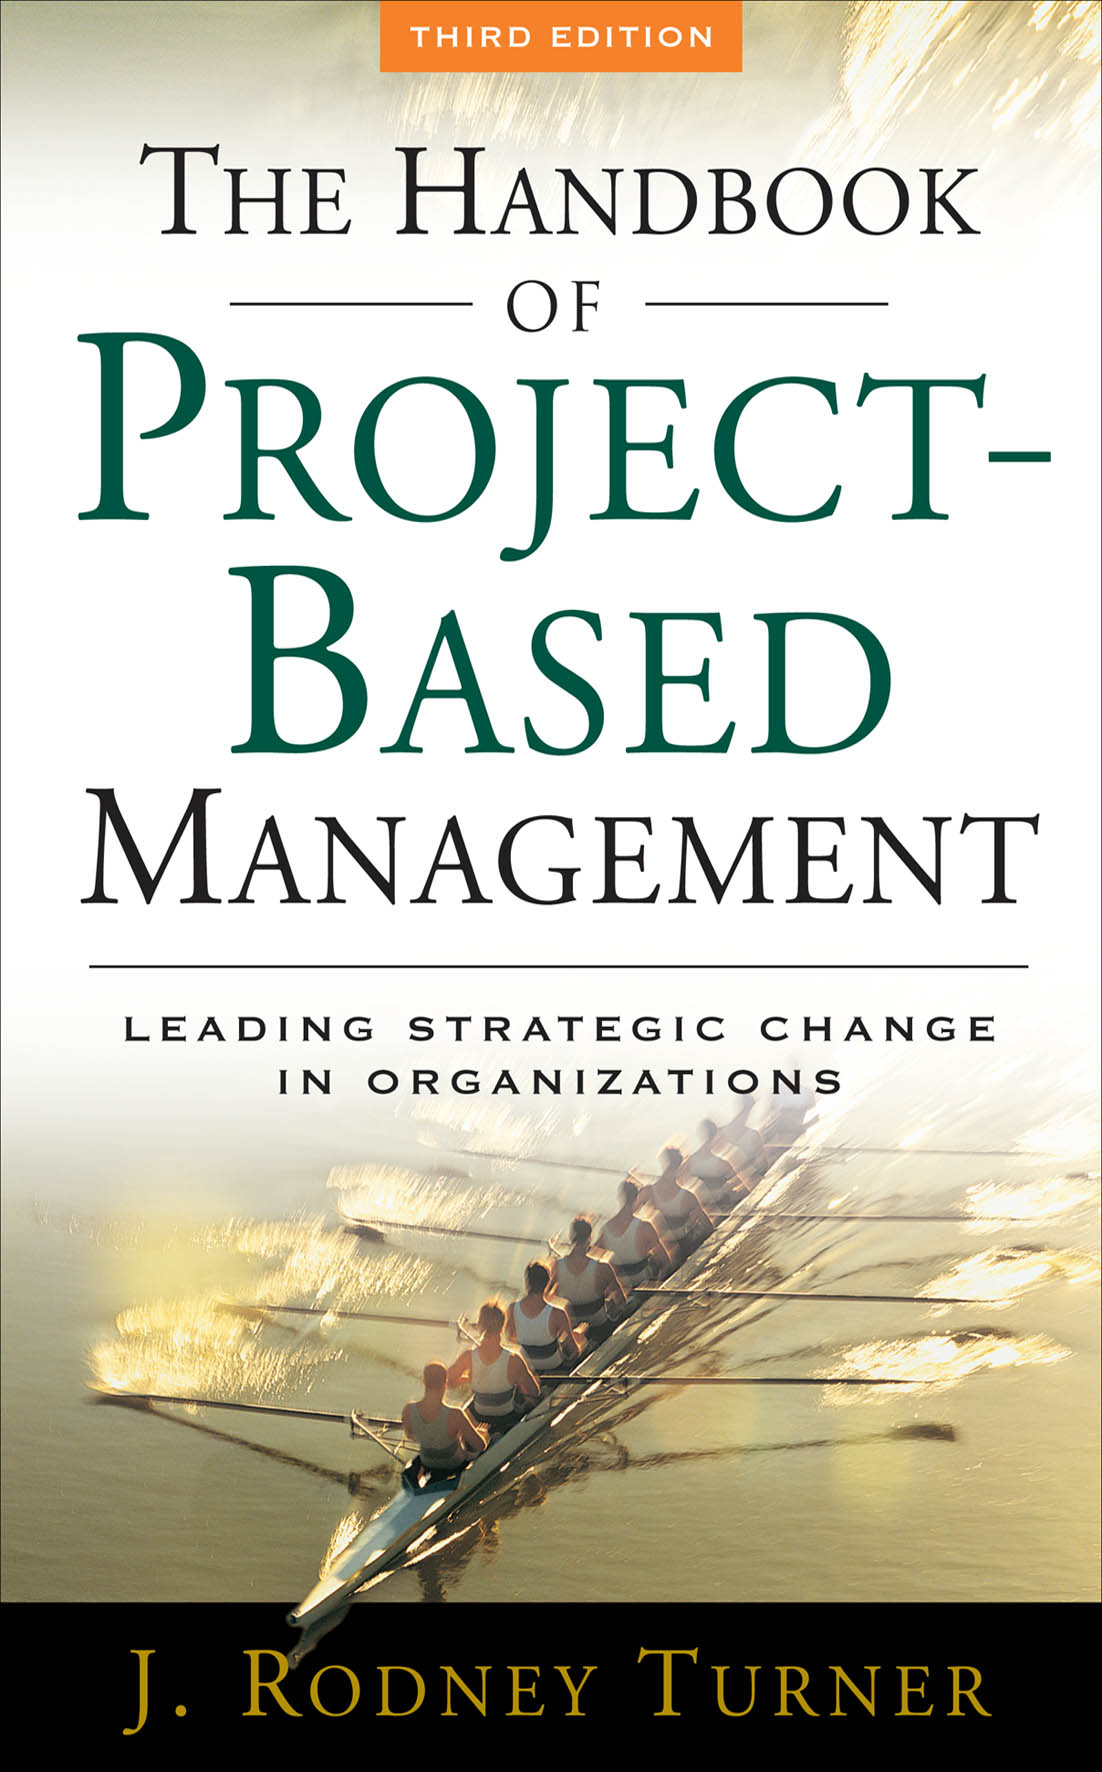 Download Ebook The Handbook of Project-based Management (3rd ed.) by J. Rodney Turner Pdf